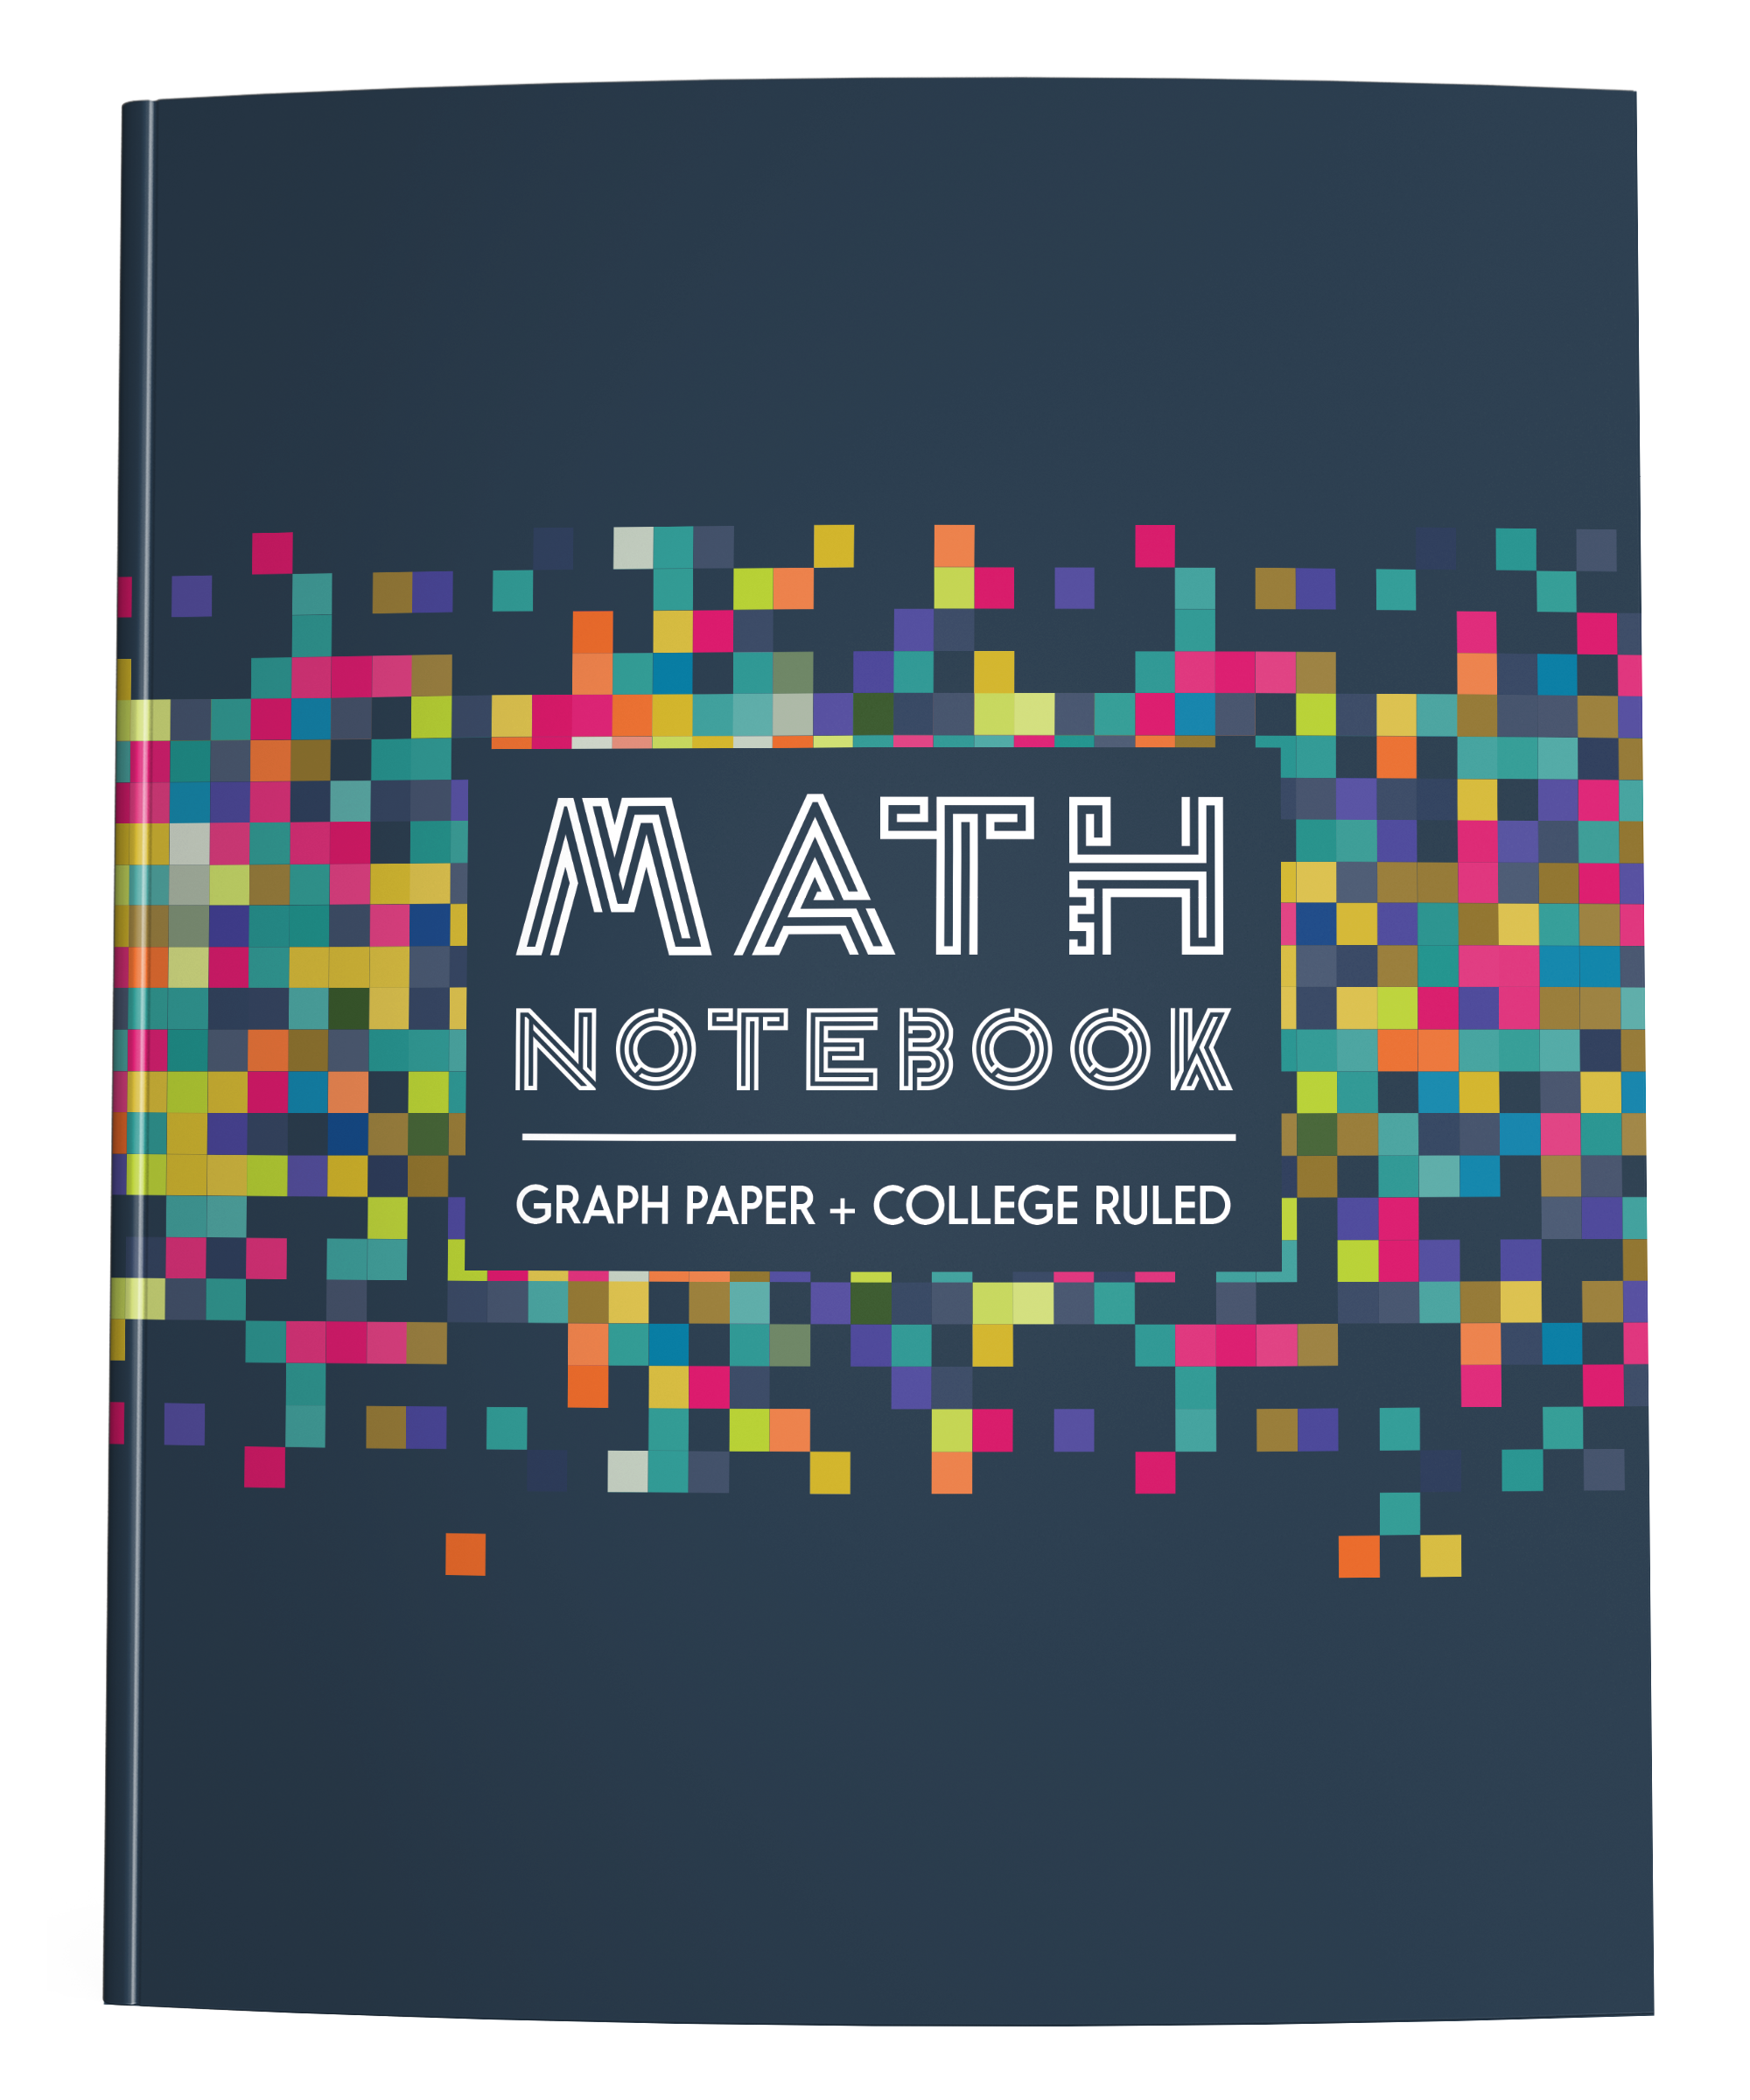 Math Notebook Graph Paper College Ruled Colorful Pixels Squidmore Company Stationery Math Notebooks College Rule Graph Paper